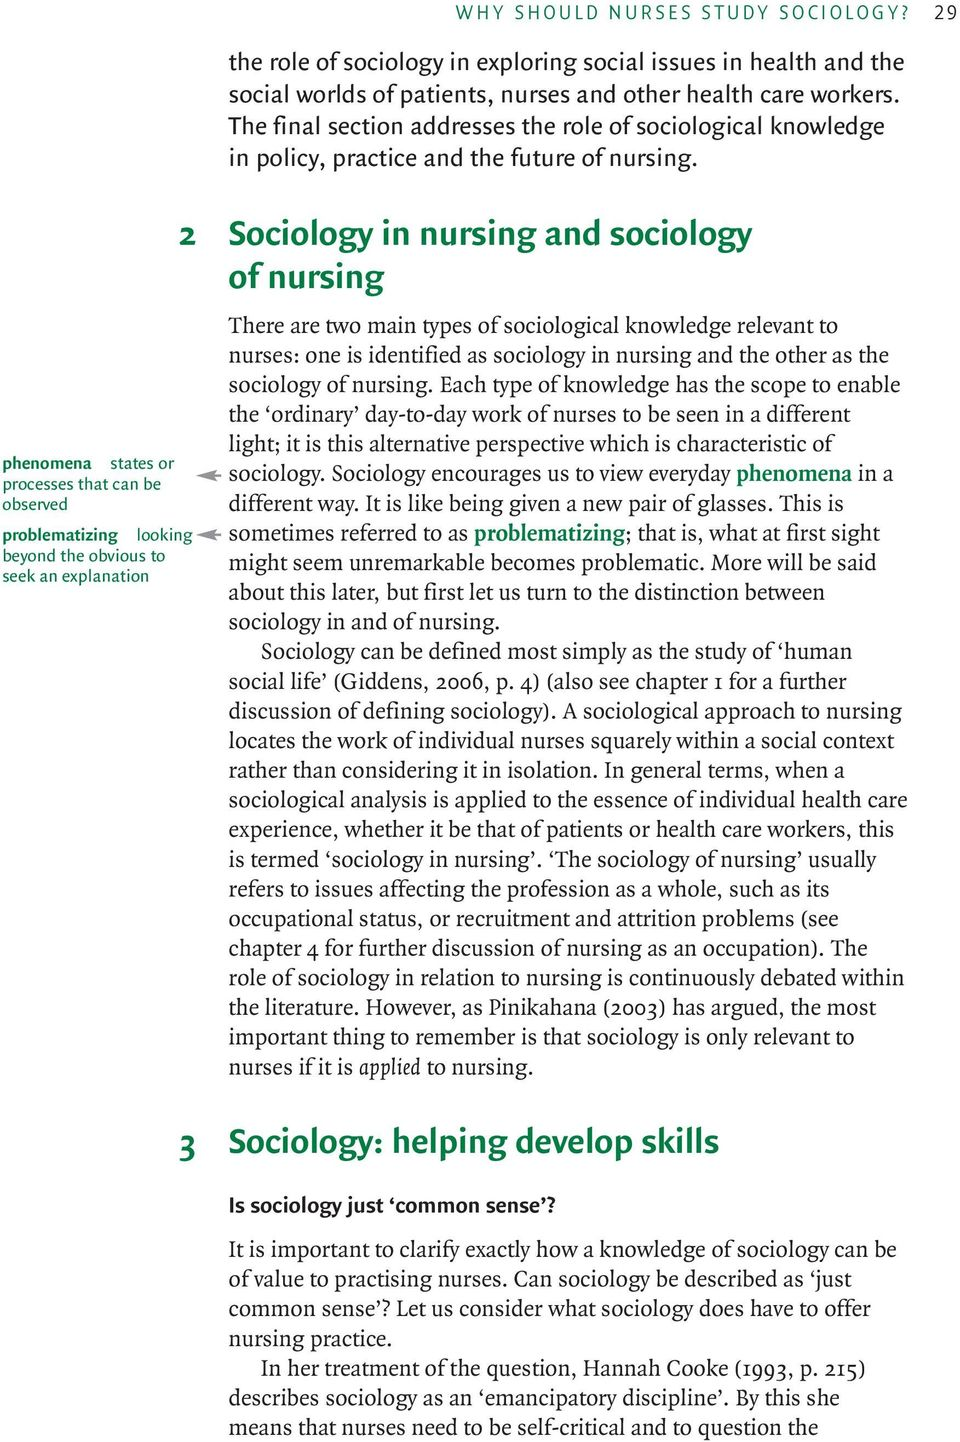 The final section addresses the role of sociological knowledge in policy, practice and the future of nursing.